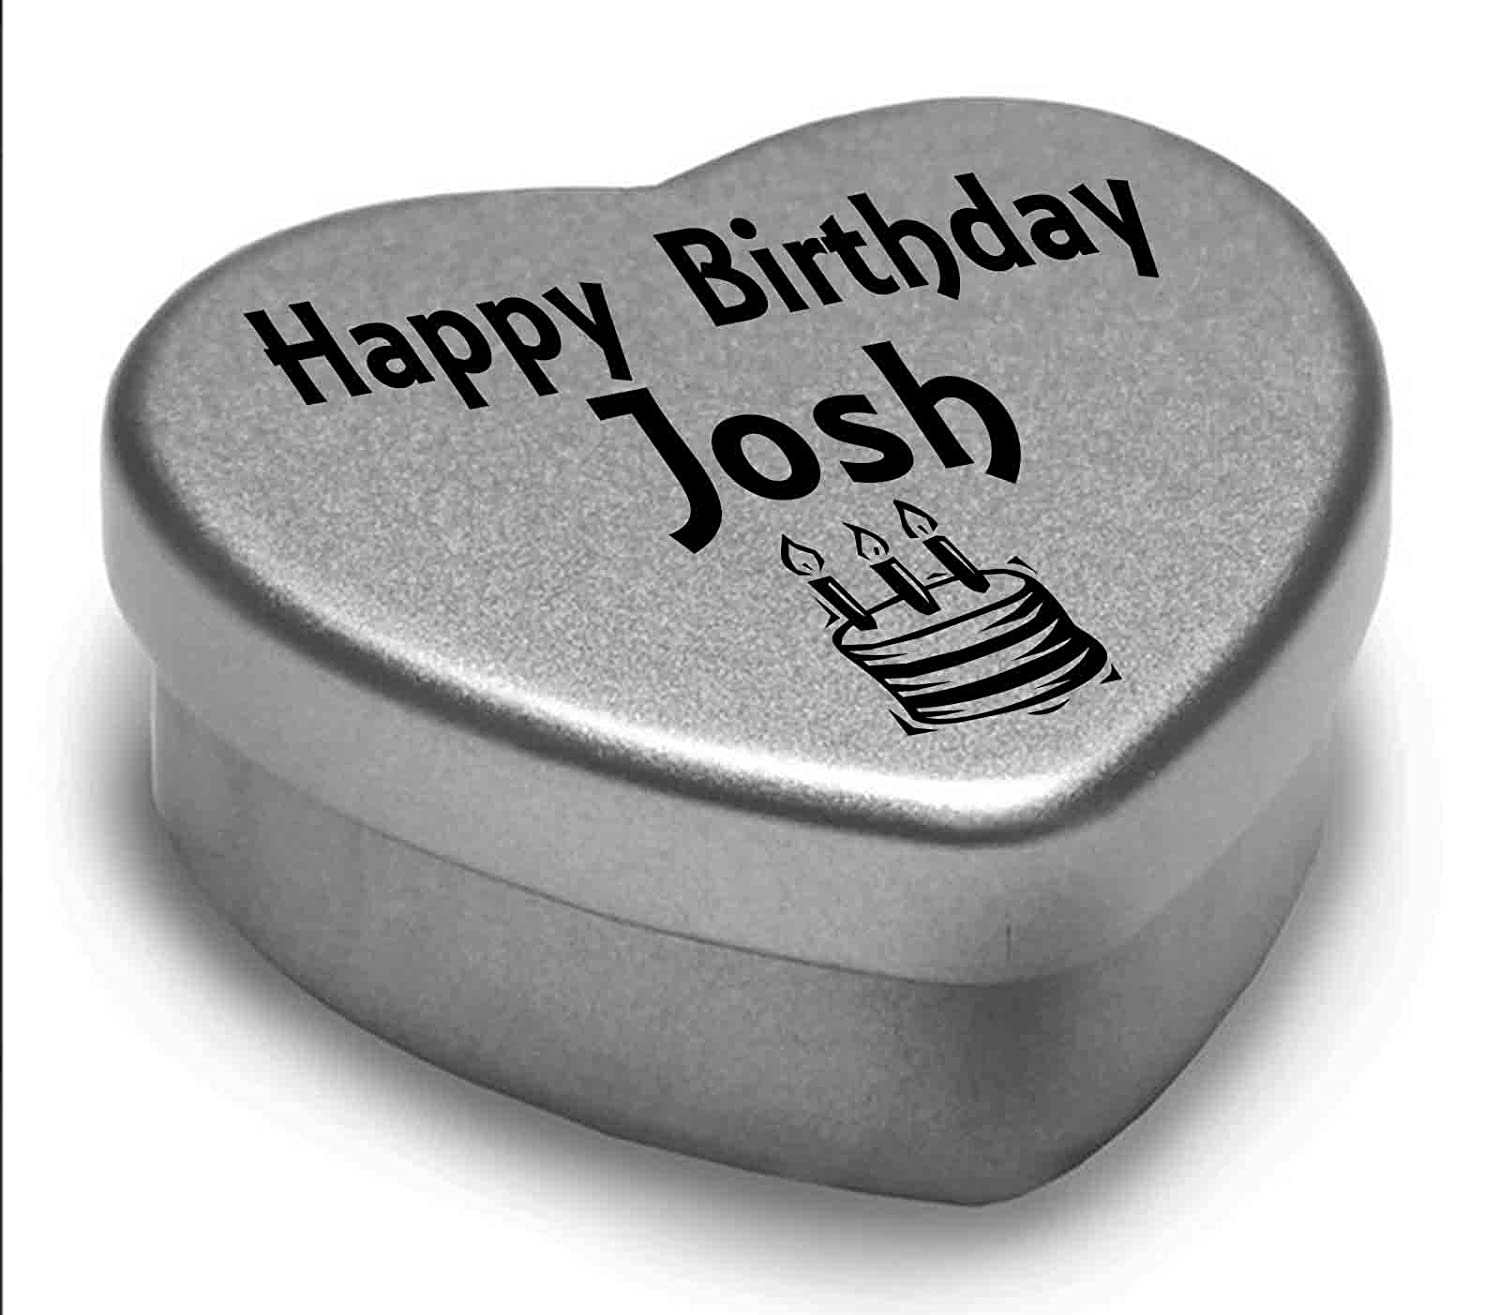 Fits Beautifully in the Palm of Your Hand Happy Birthday Josh Mini Heart Tin Gift Present For Josh WIth Chocolates Silver Heart Tin Great Birthday Present To Show Somebody You are Thinking of Them.